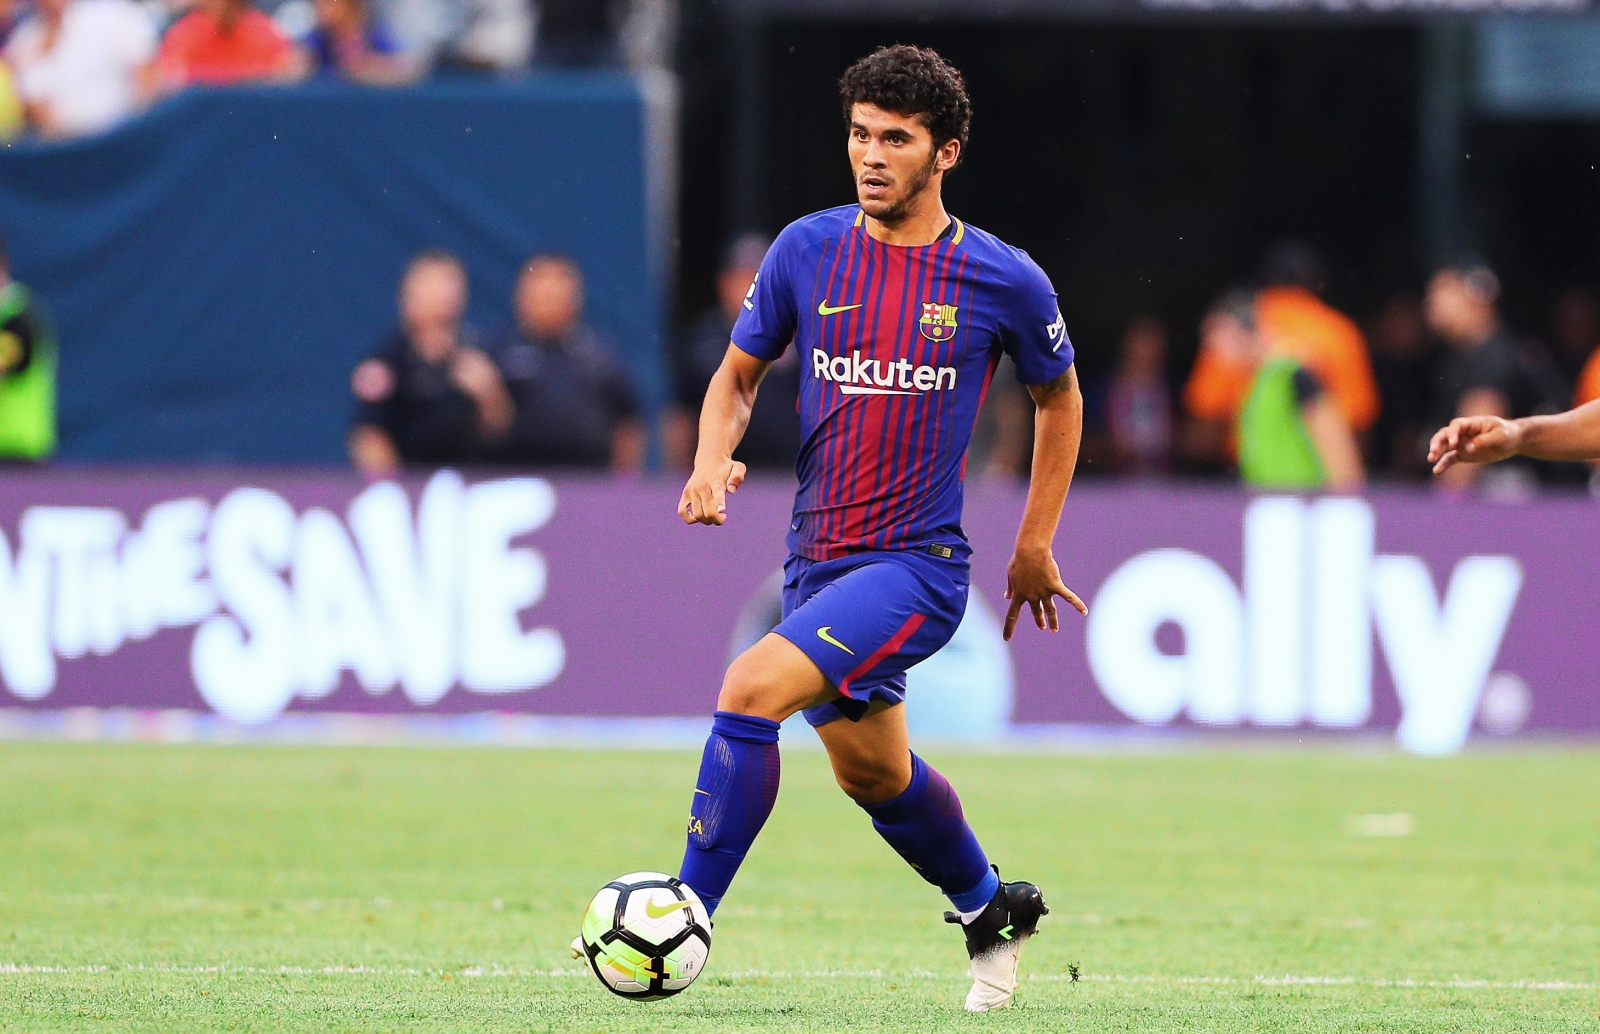 FC BARCELONAS LA MASIA ACADEMY Has Been Amongst The Most Efficient Of Youth Systems Over Past 25 Years Following Johan Cruyffs Reconstruction That